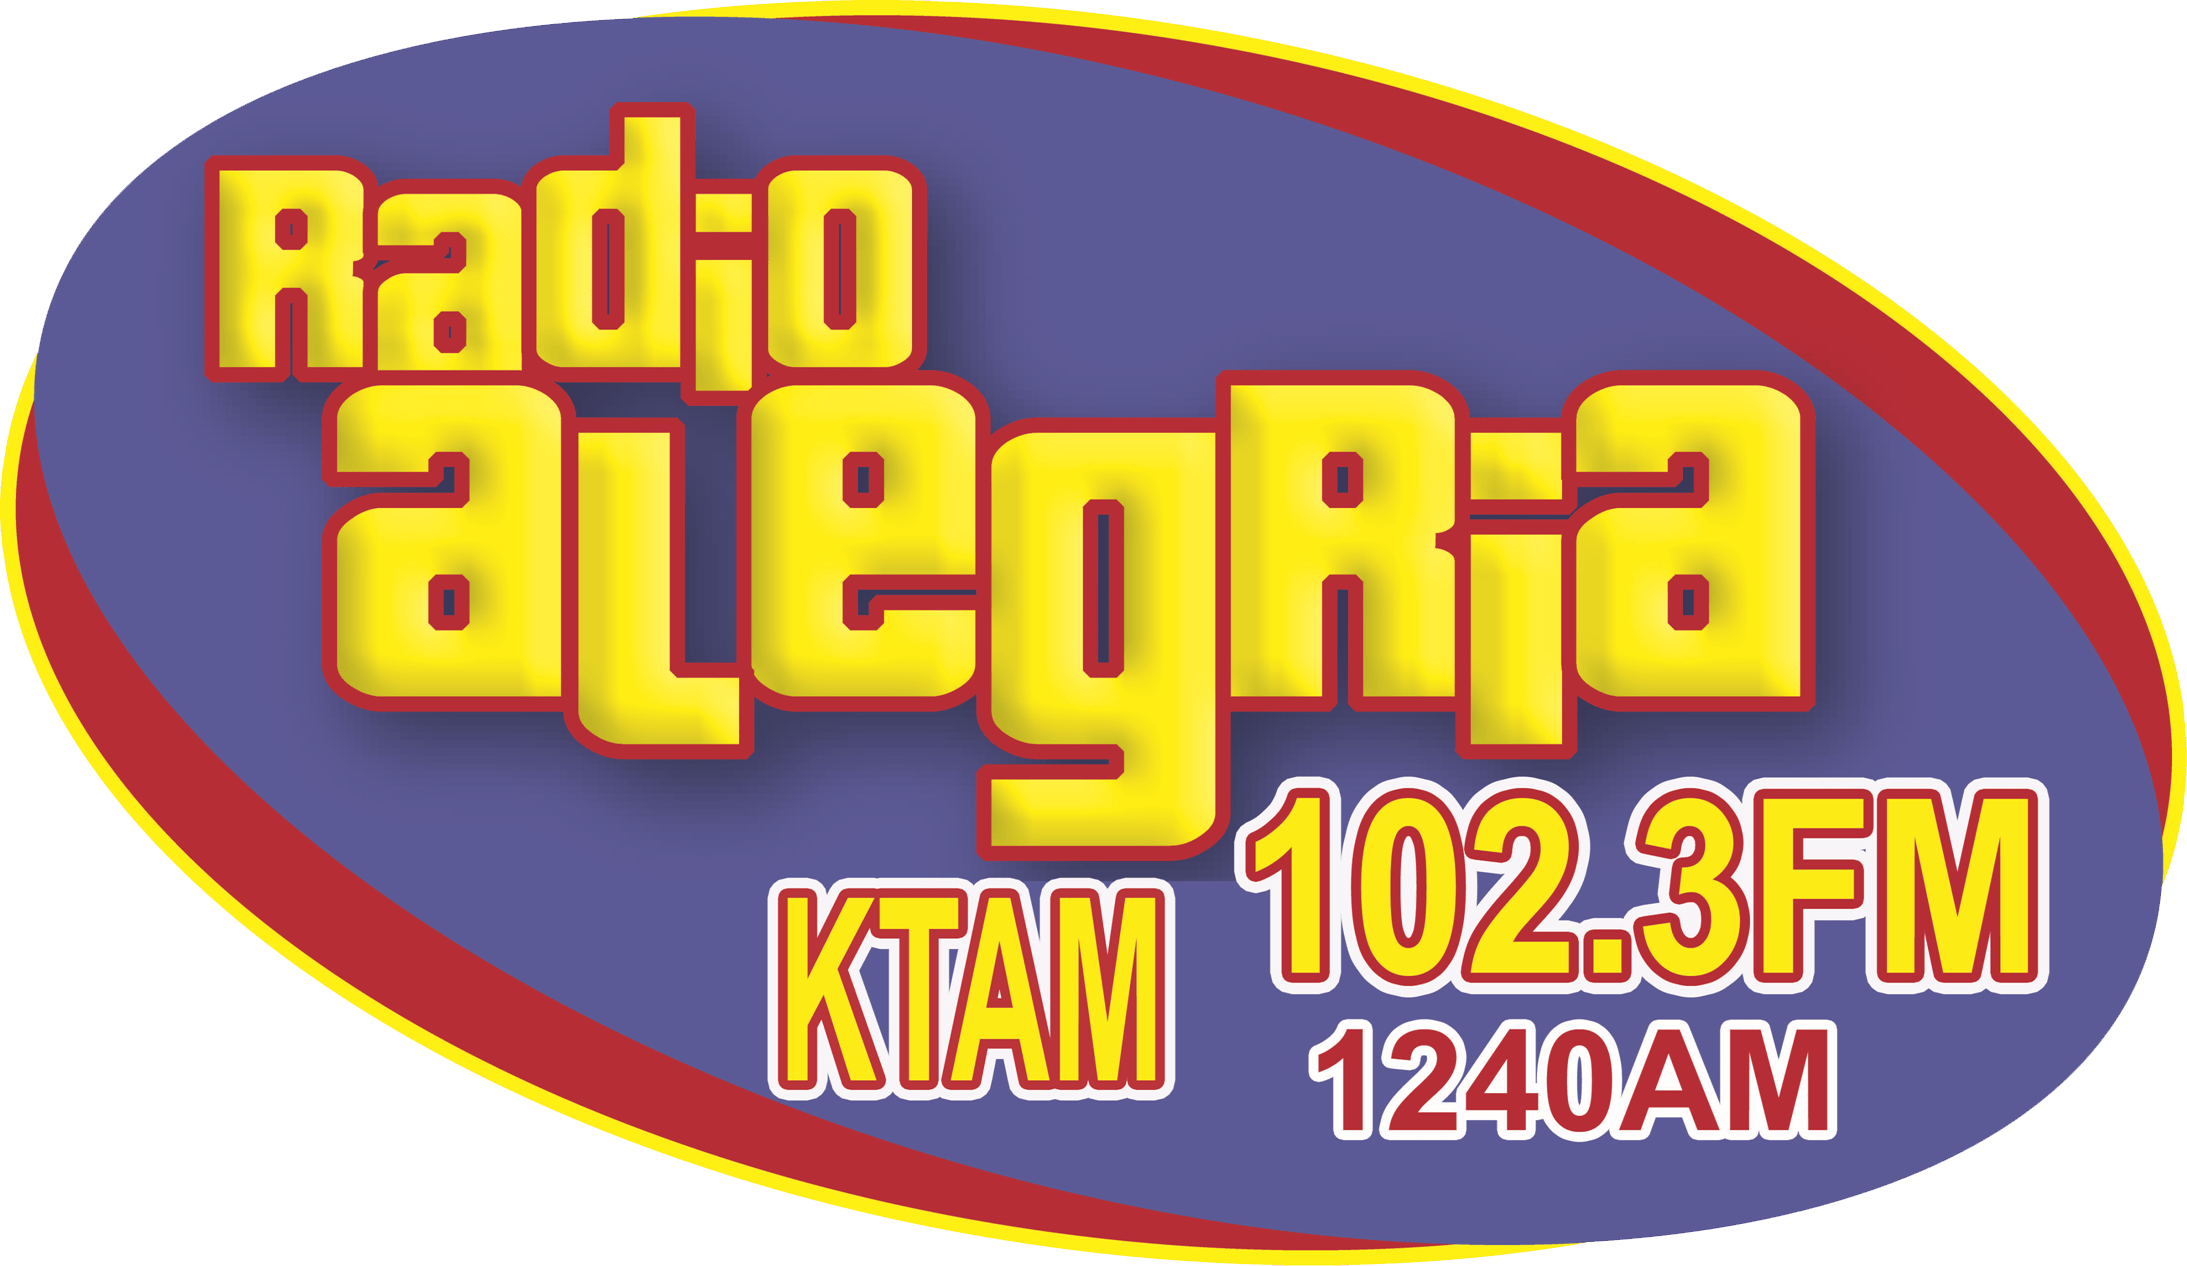 Radio Alegria